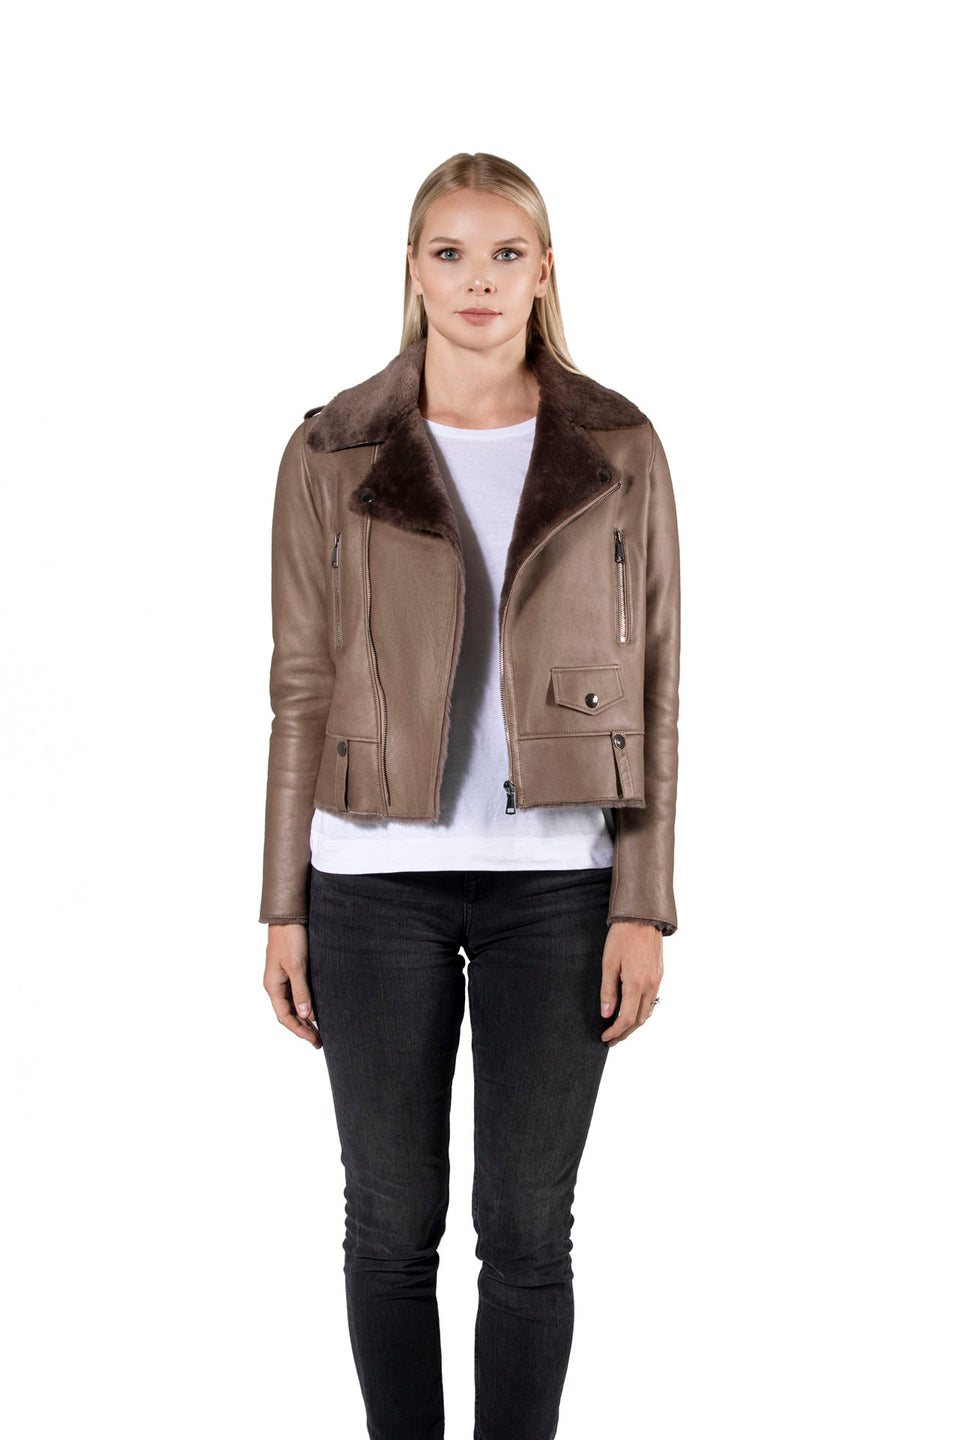 Adel - Women's Shearling Zipper Jacket Fashion 2020 -